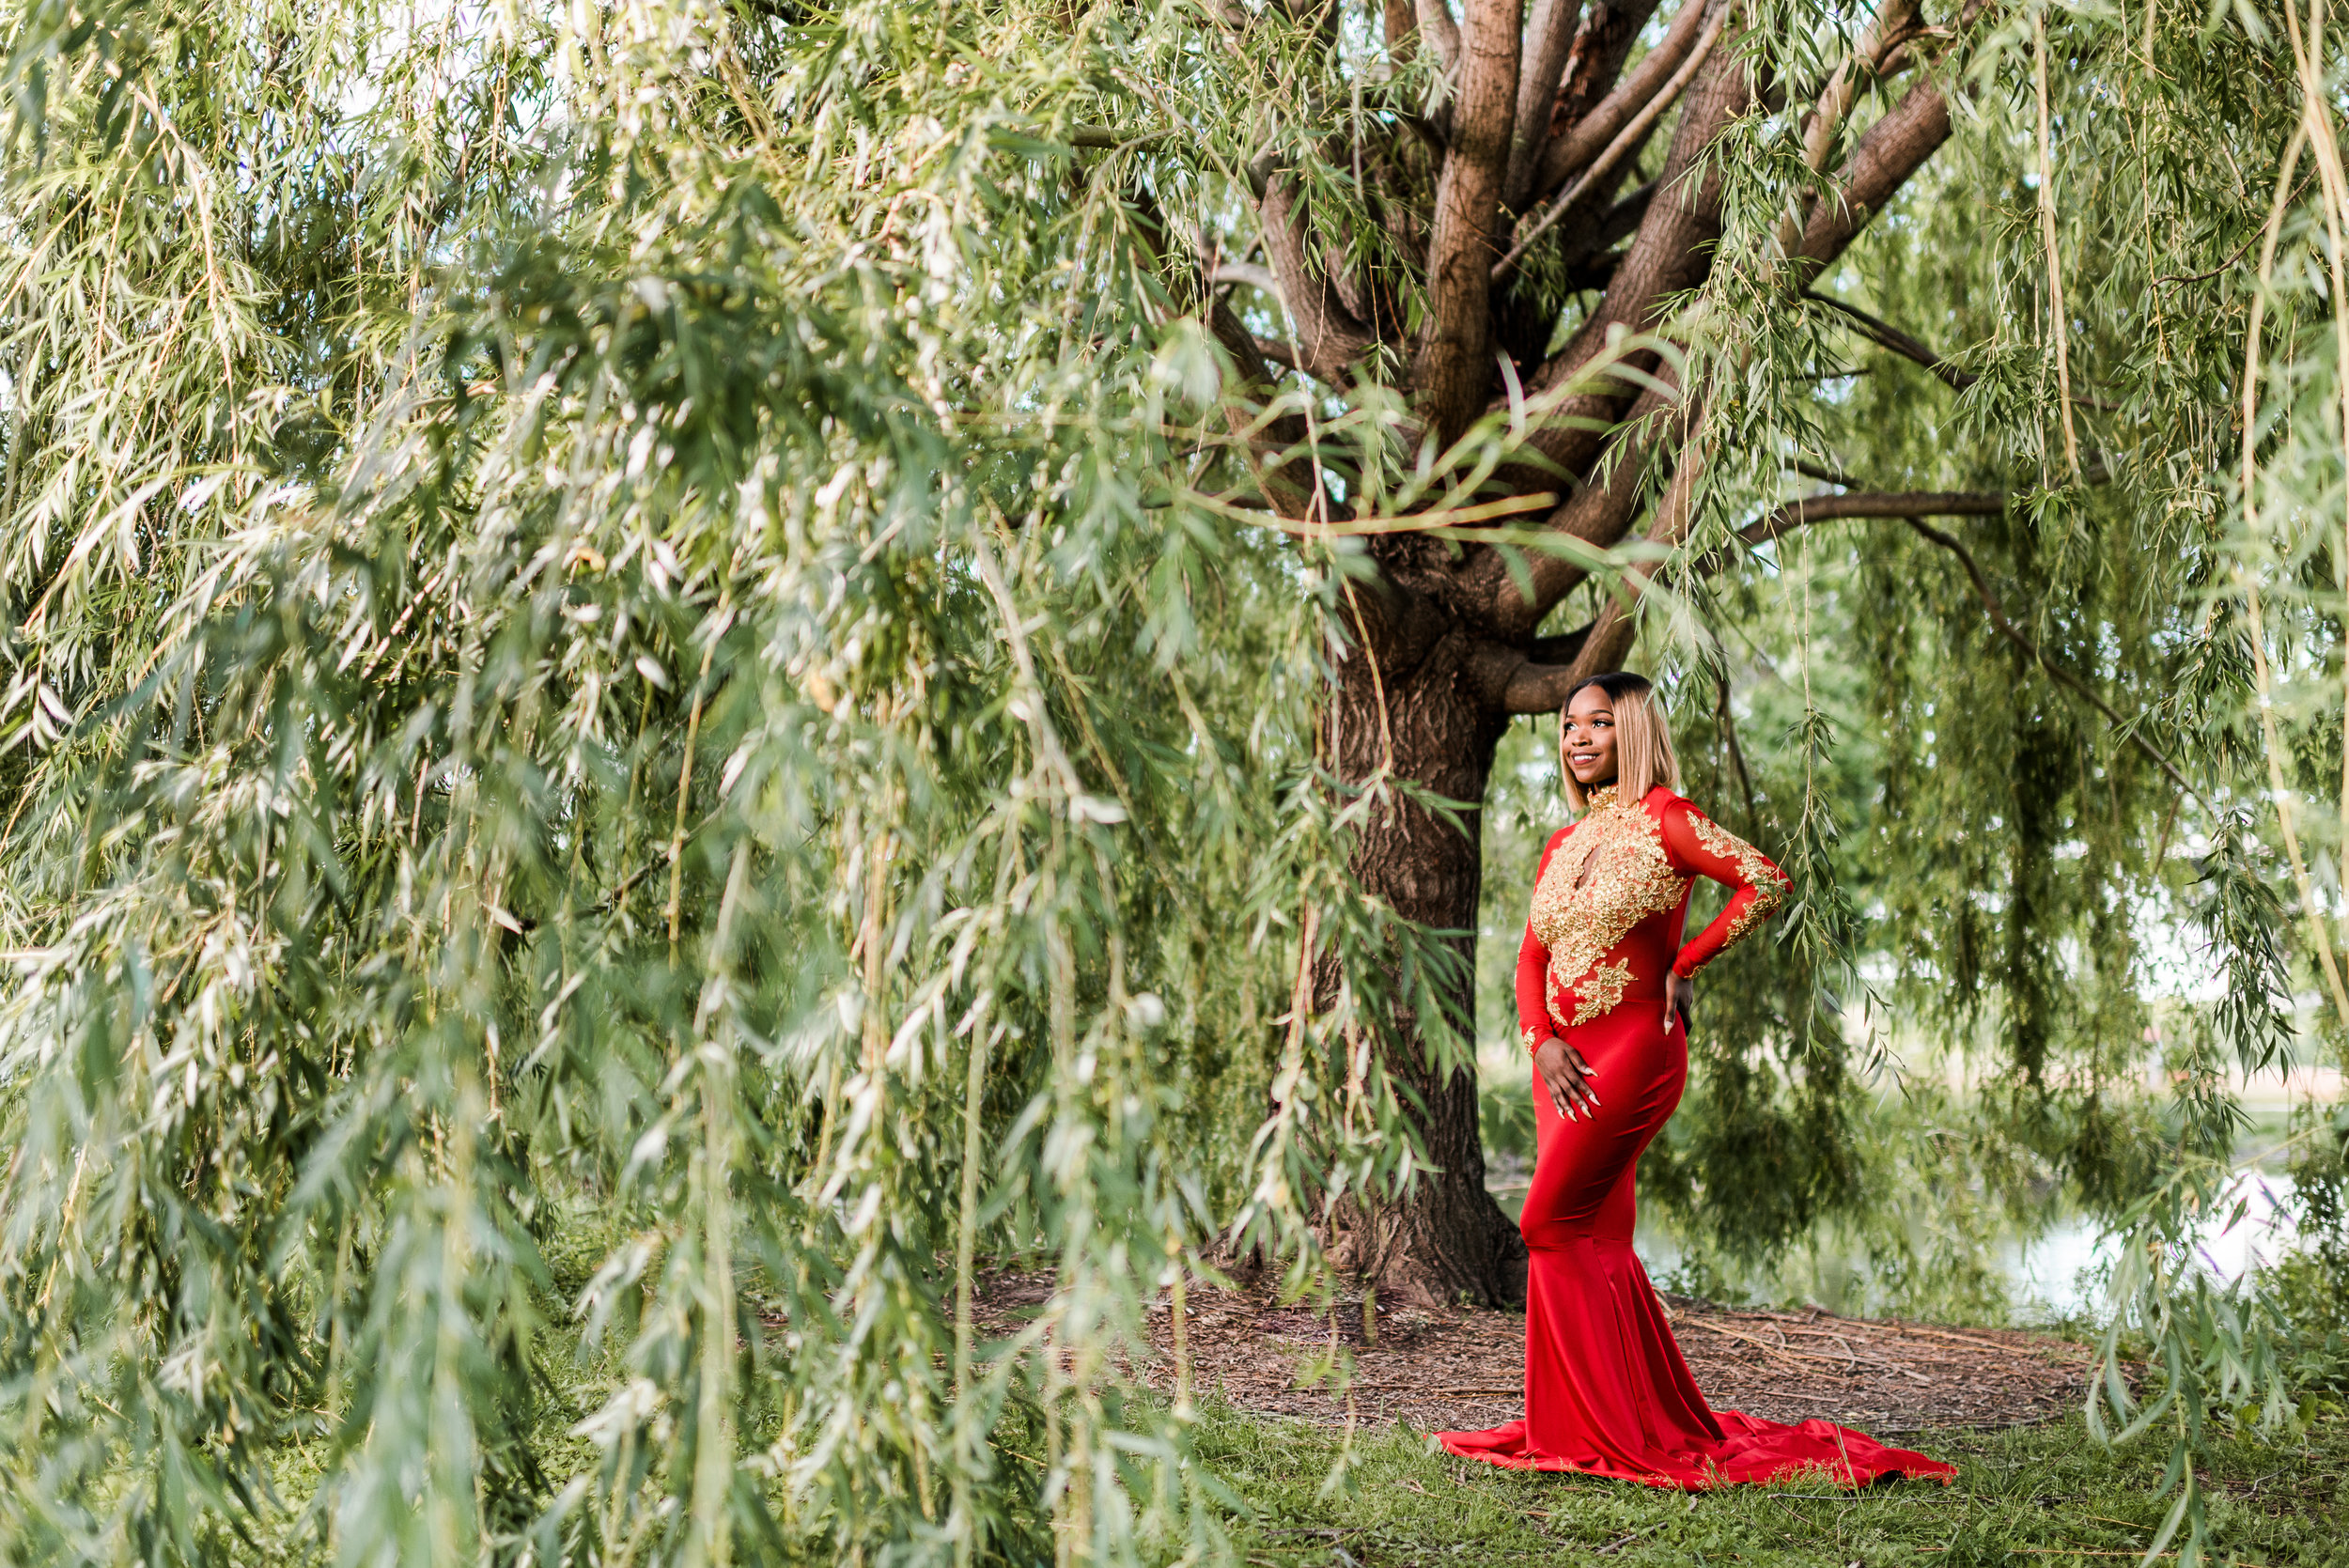 st-louis-photographer-forest park-prom-pictures-39.jpg